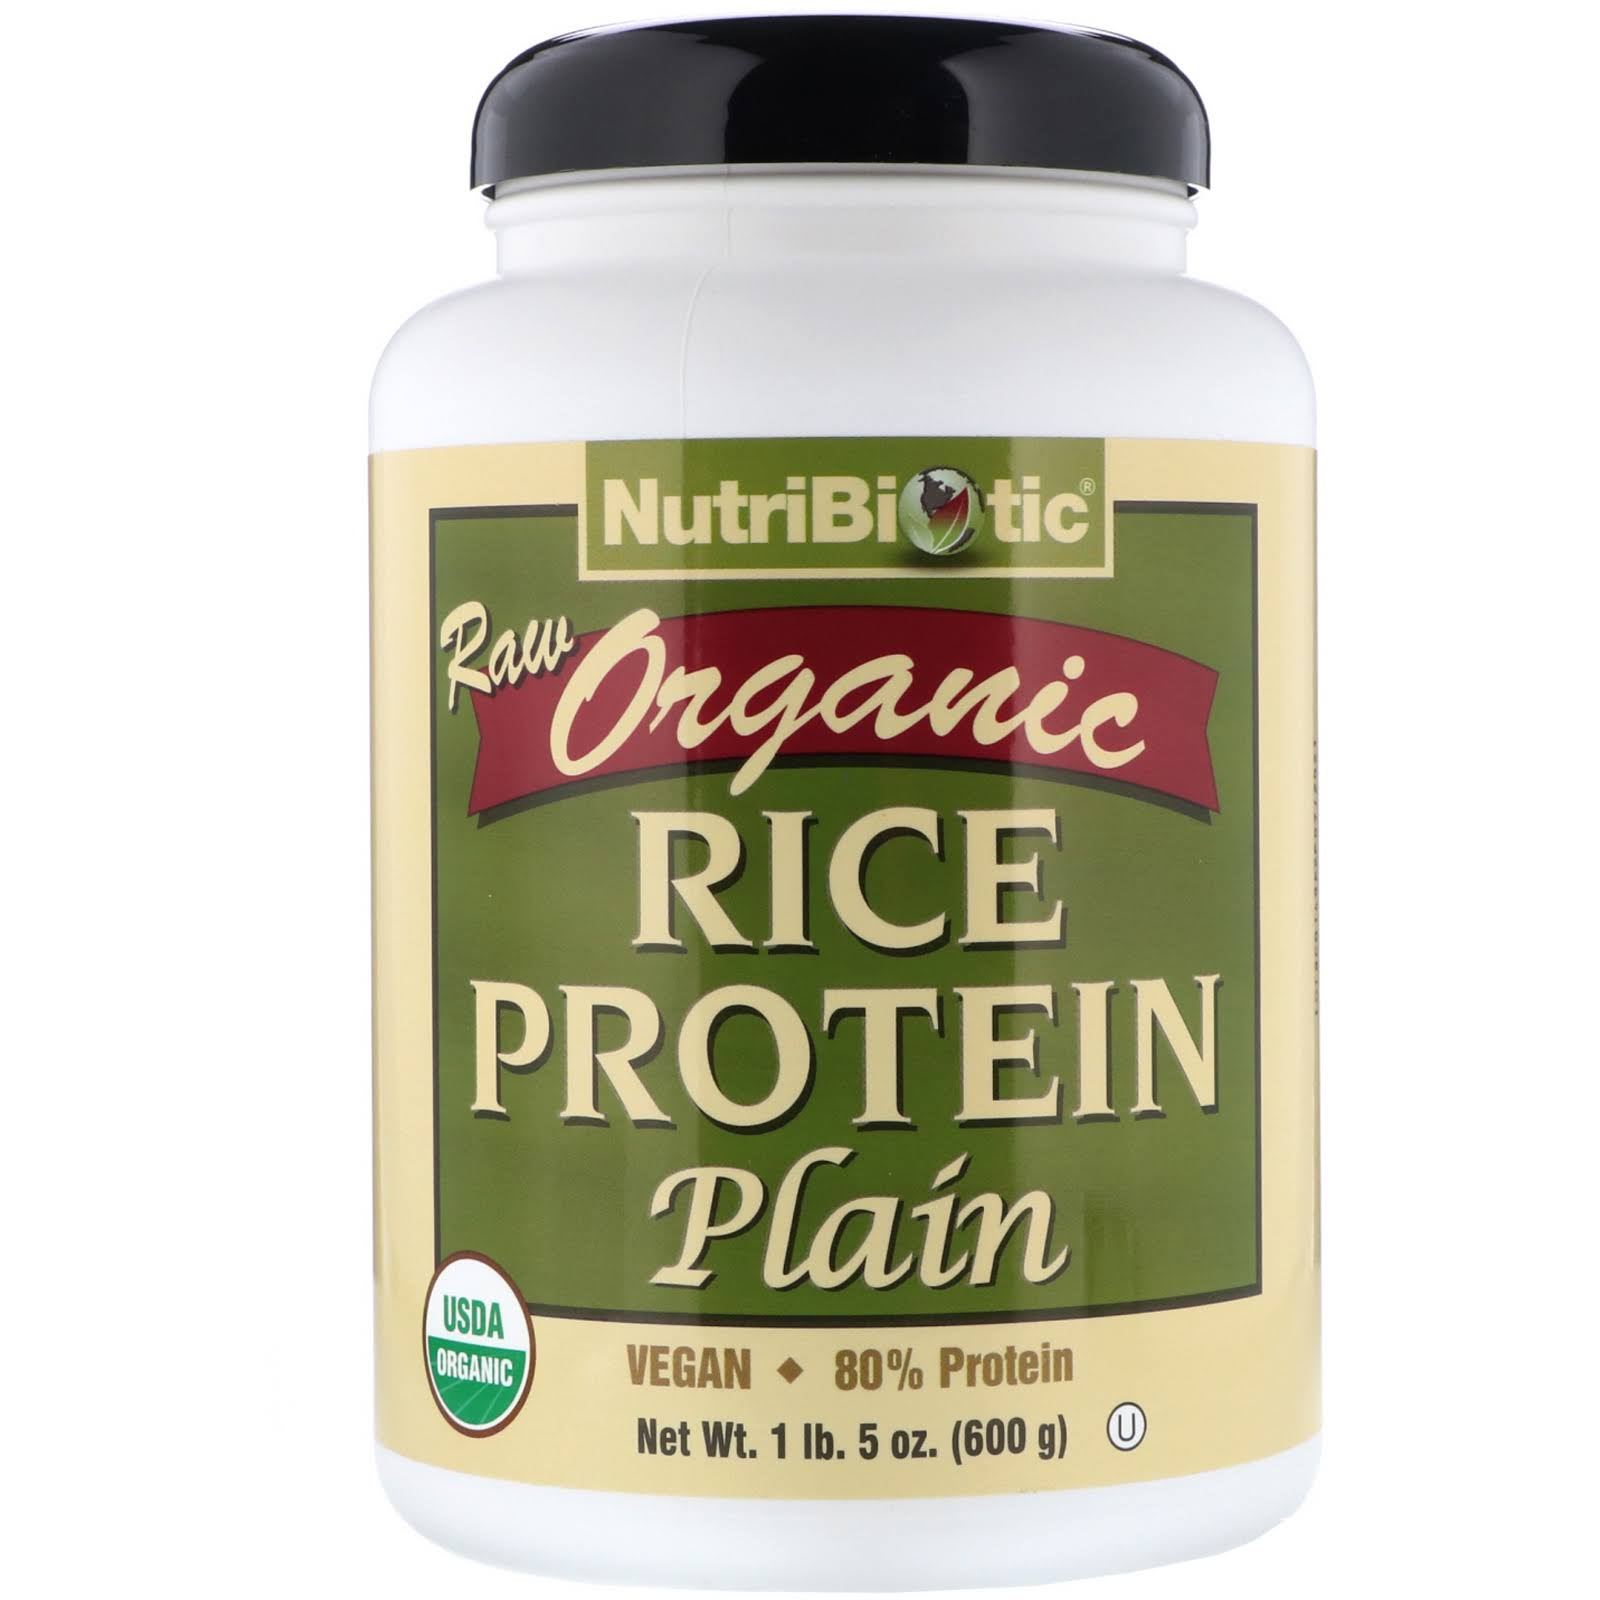 NutriBiotic Organic Rice Protein - Plain, 1 lb